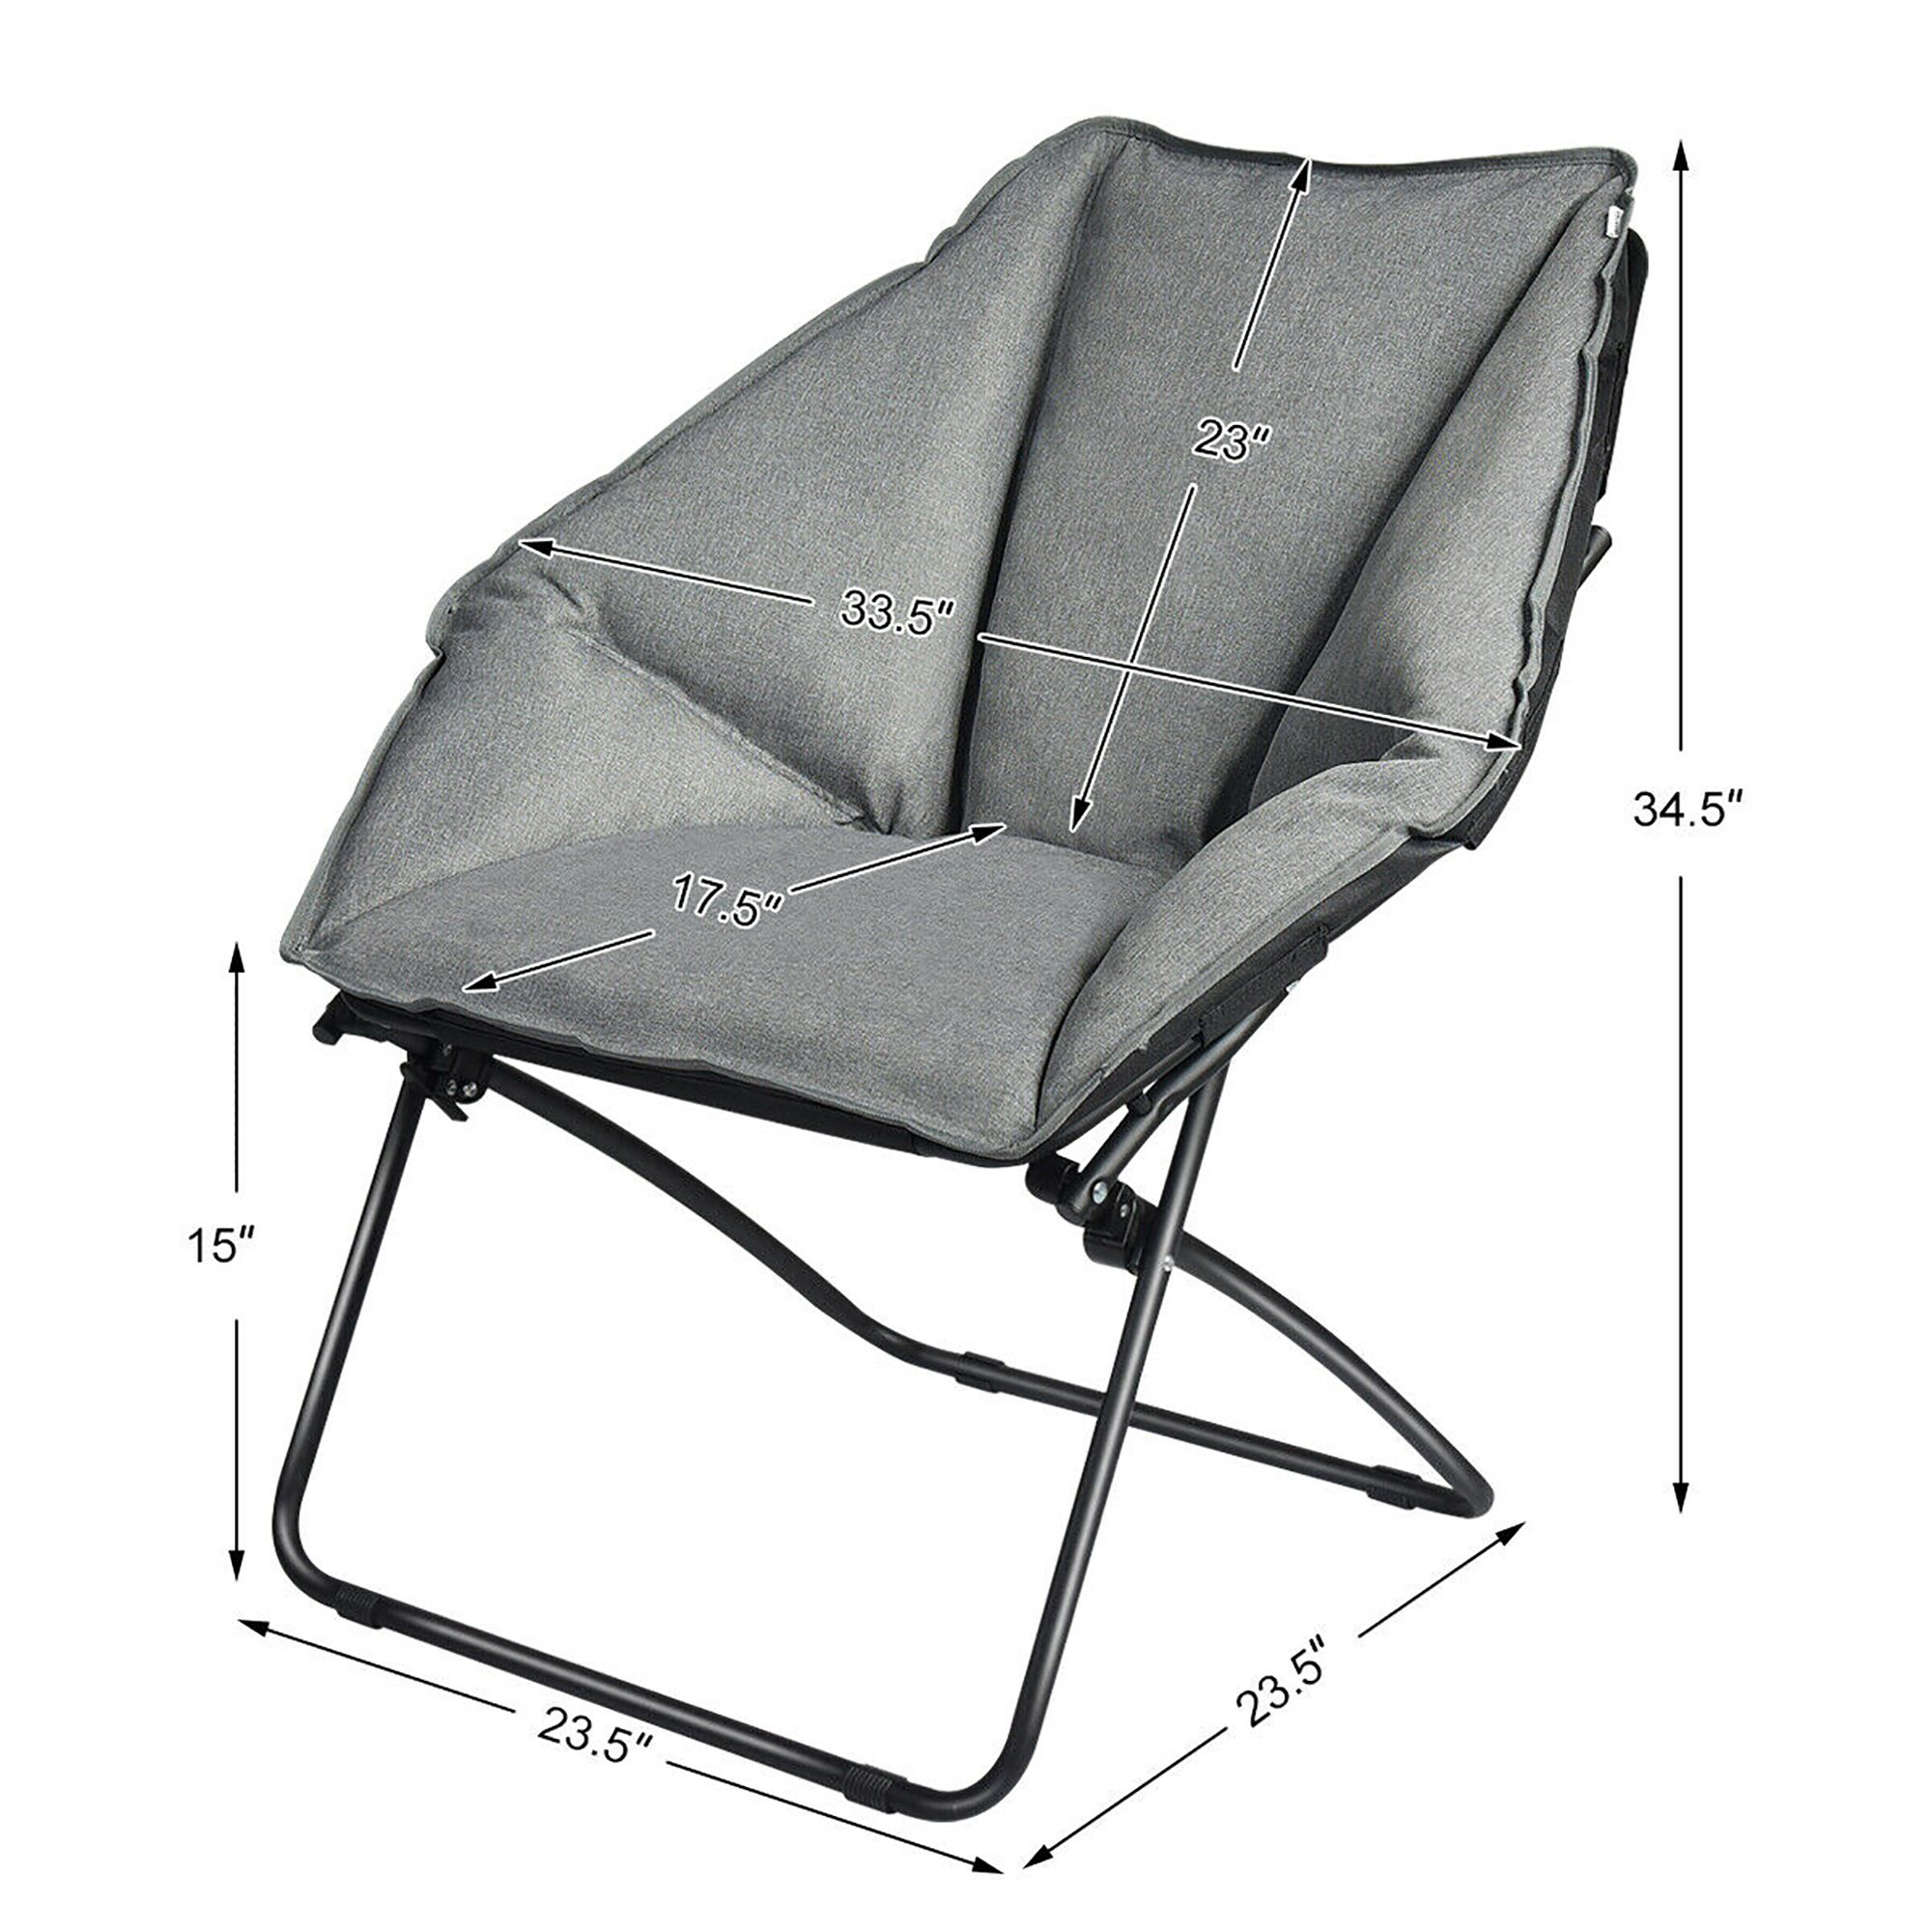 Costway Folding Saucer Padded Chair Soft Wide Seat w/ Metal Frame Lounge Furniture